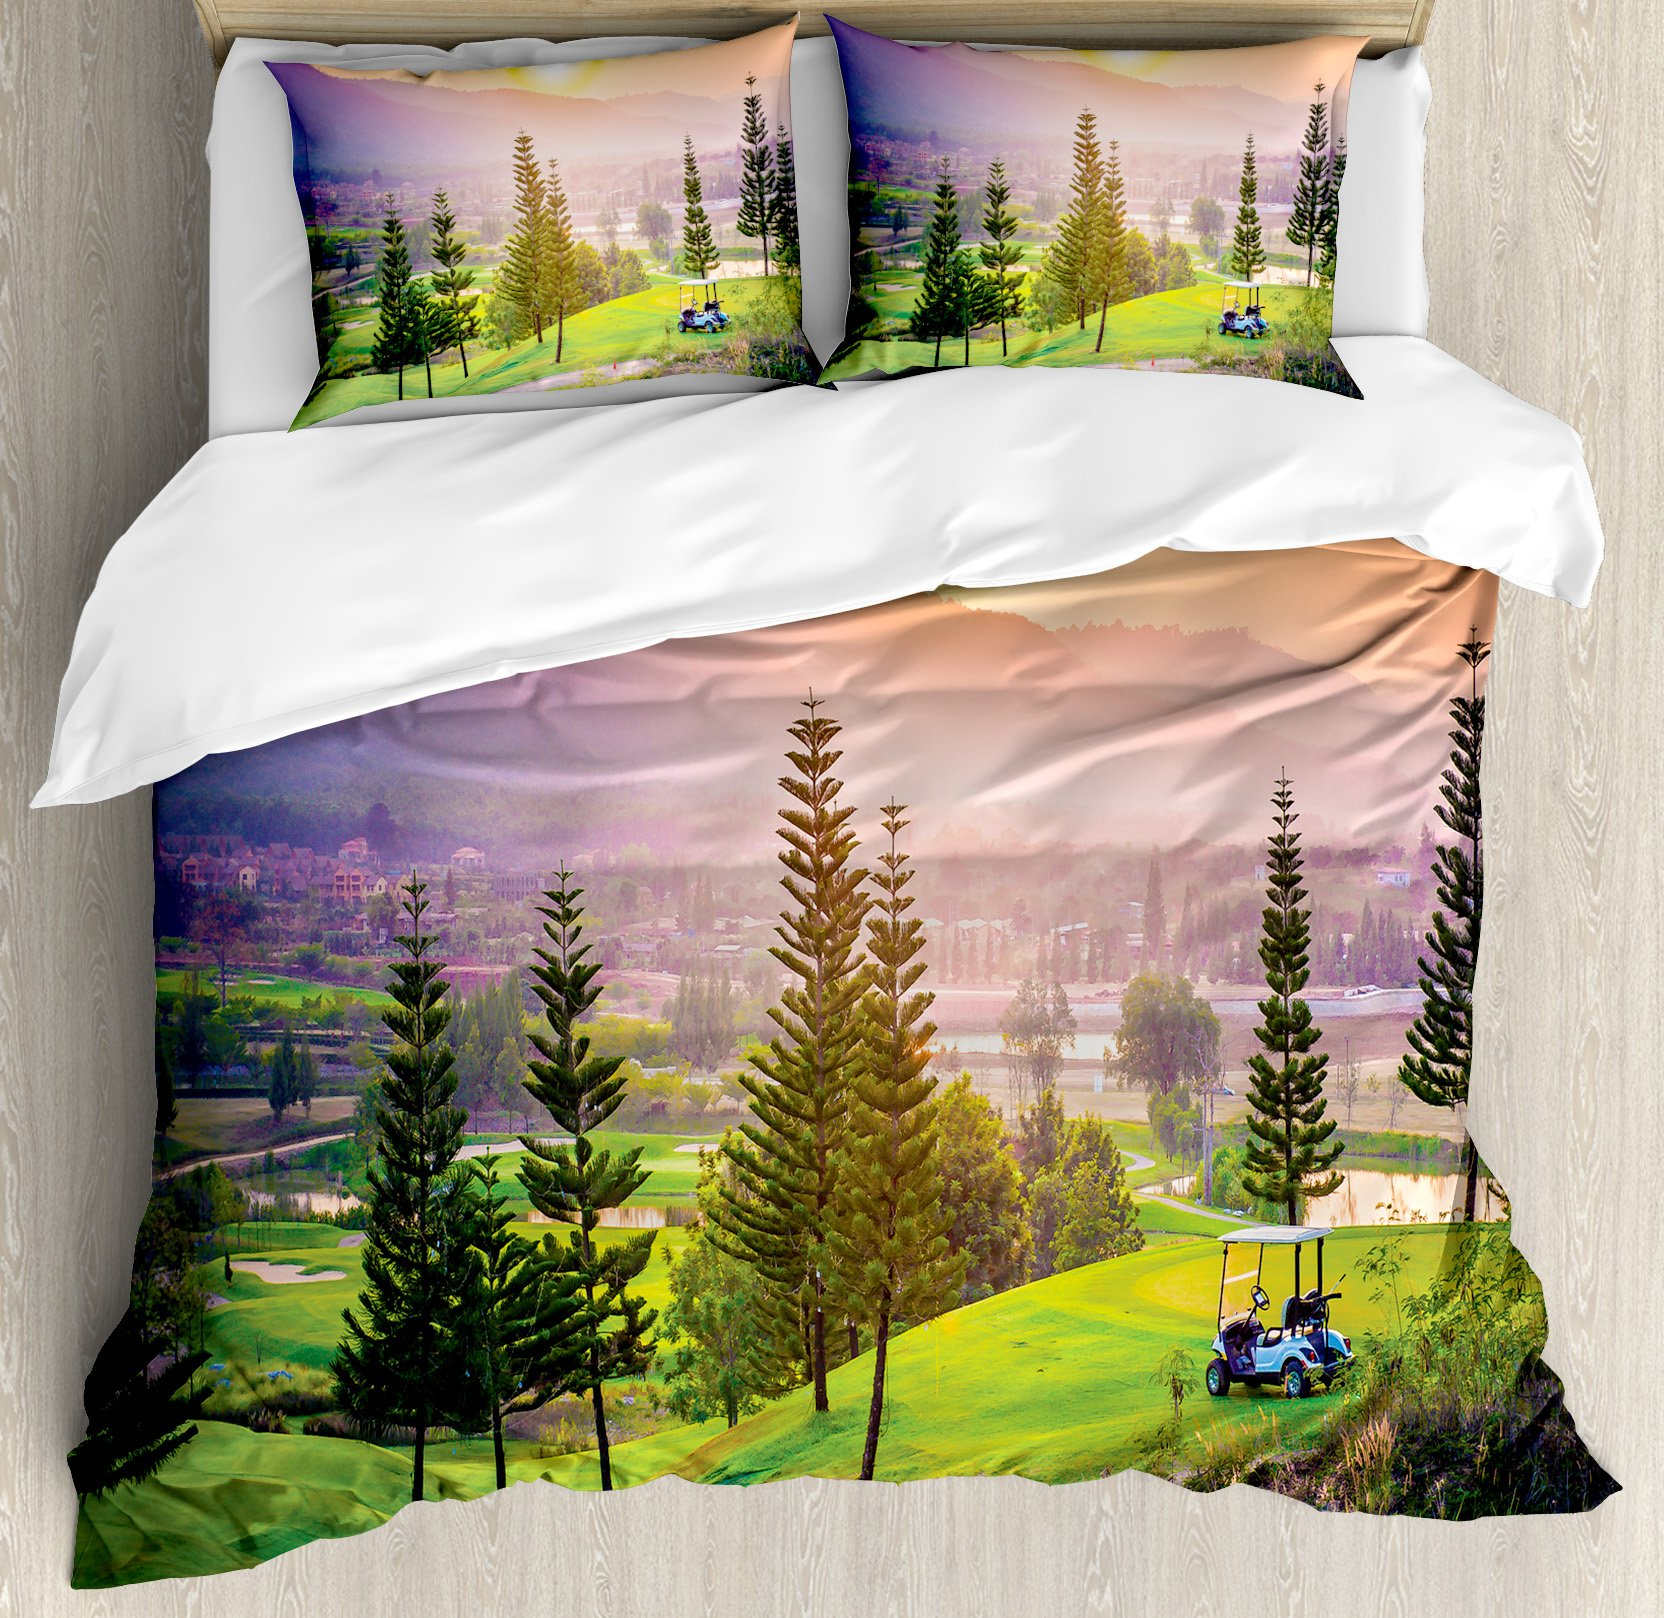 Farm House Decor Duvet Cover Set by Ambesonne, Vibrant Golf Resort Park in Spring Season with Trees Sunset Hills and Valley, 3 Piece Bedding Set with Pillow Shams, Queen / Full, Multi